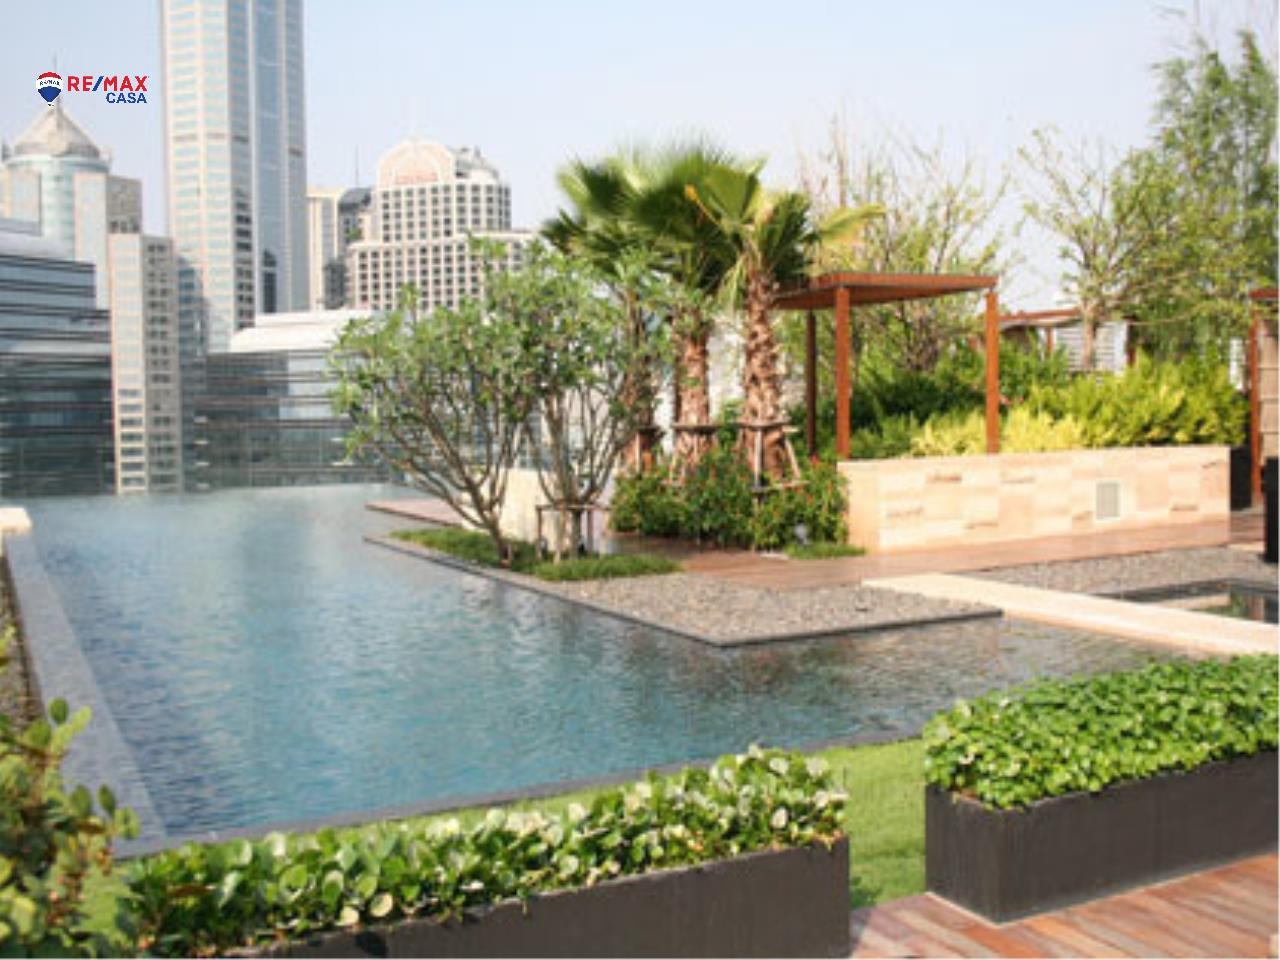 RE/MAX CASA Agency's Prive Ploenchit 4